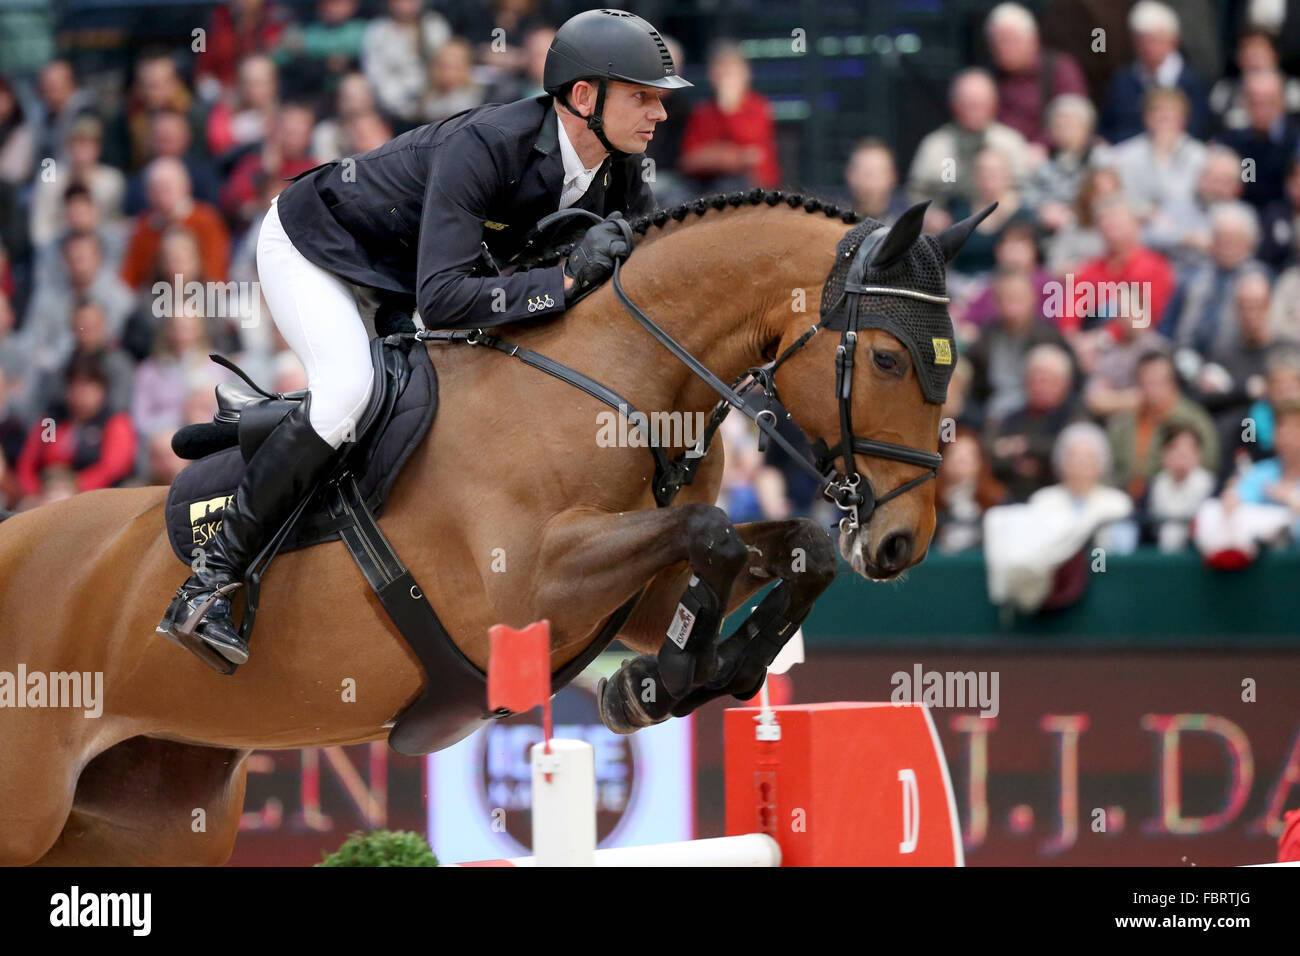 Leipzig, Germany. 17th Jan, 2016. Germany's Marco Kutscher riding Chaccorina jumps over a hurdle during the show Stock Photo